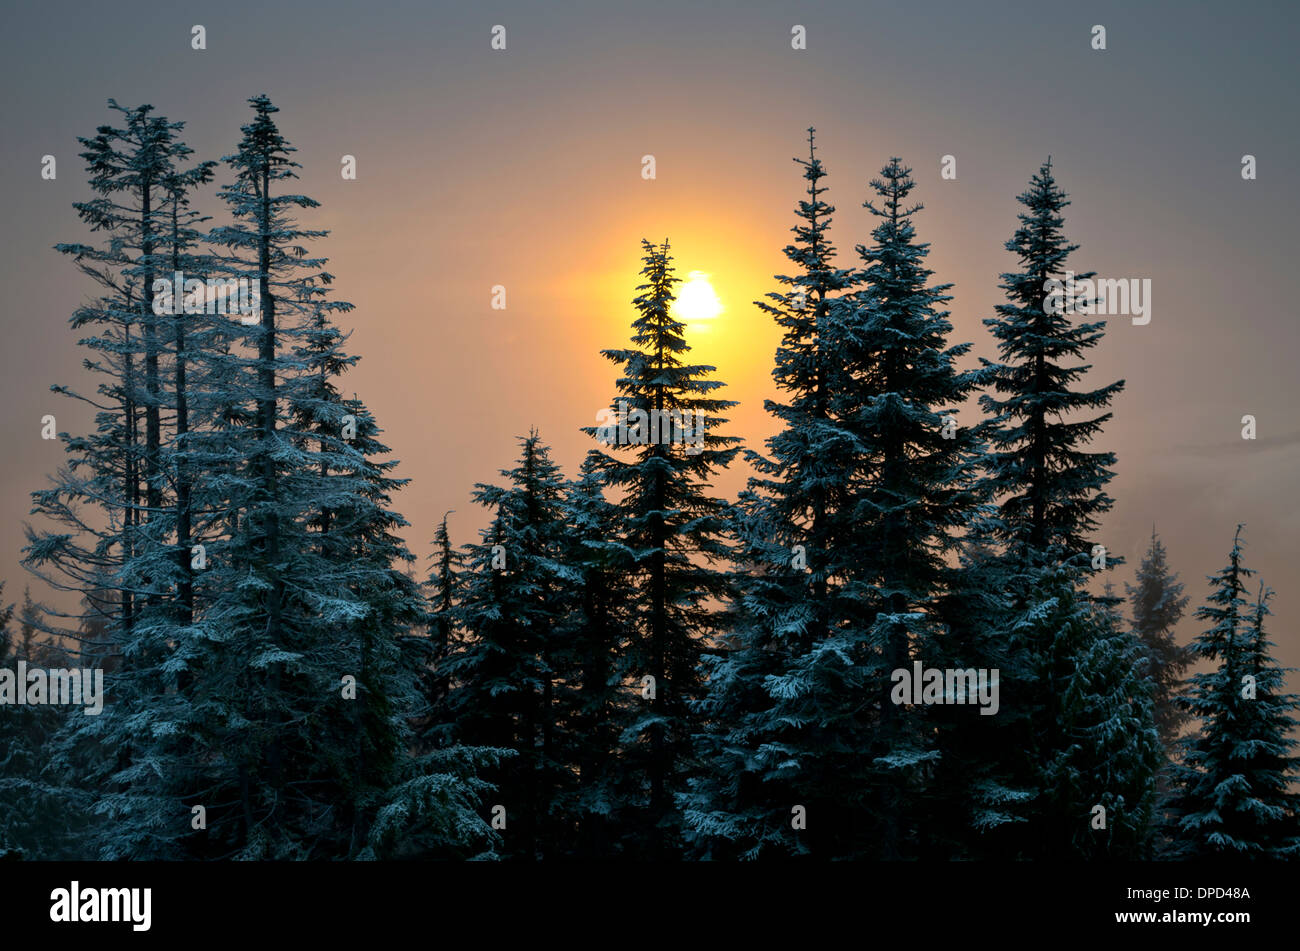 Beautiful winter sunset through the fog and pine trees.  Taken from Grouse Mountain in Vancouver, Canada. - Stock Image